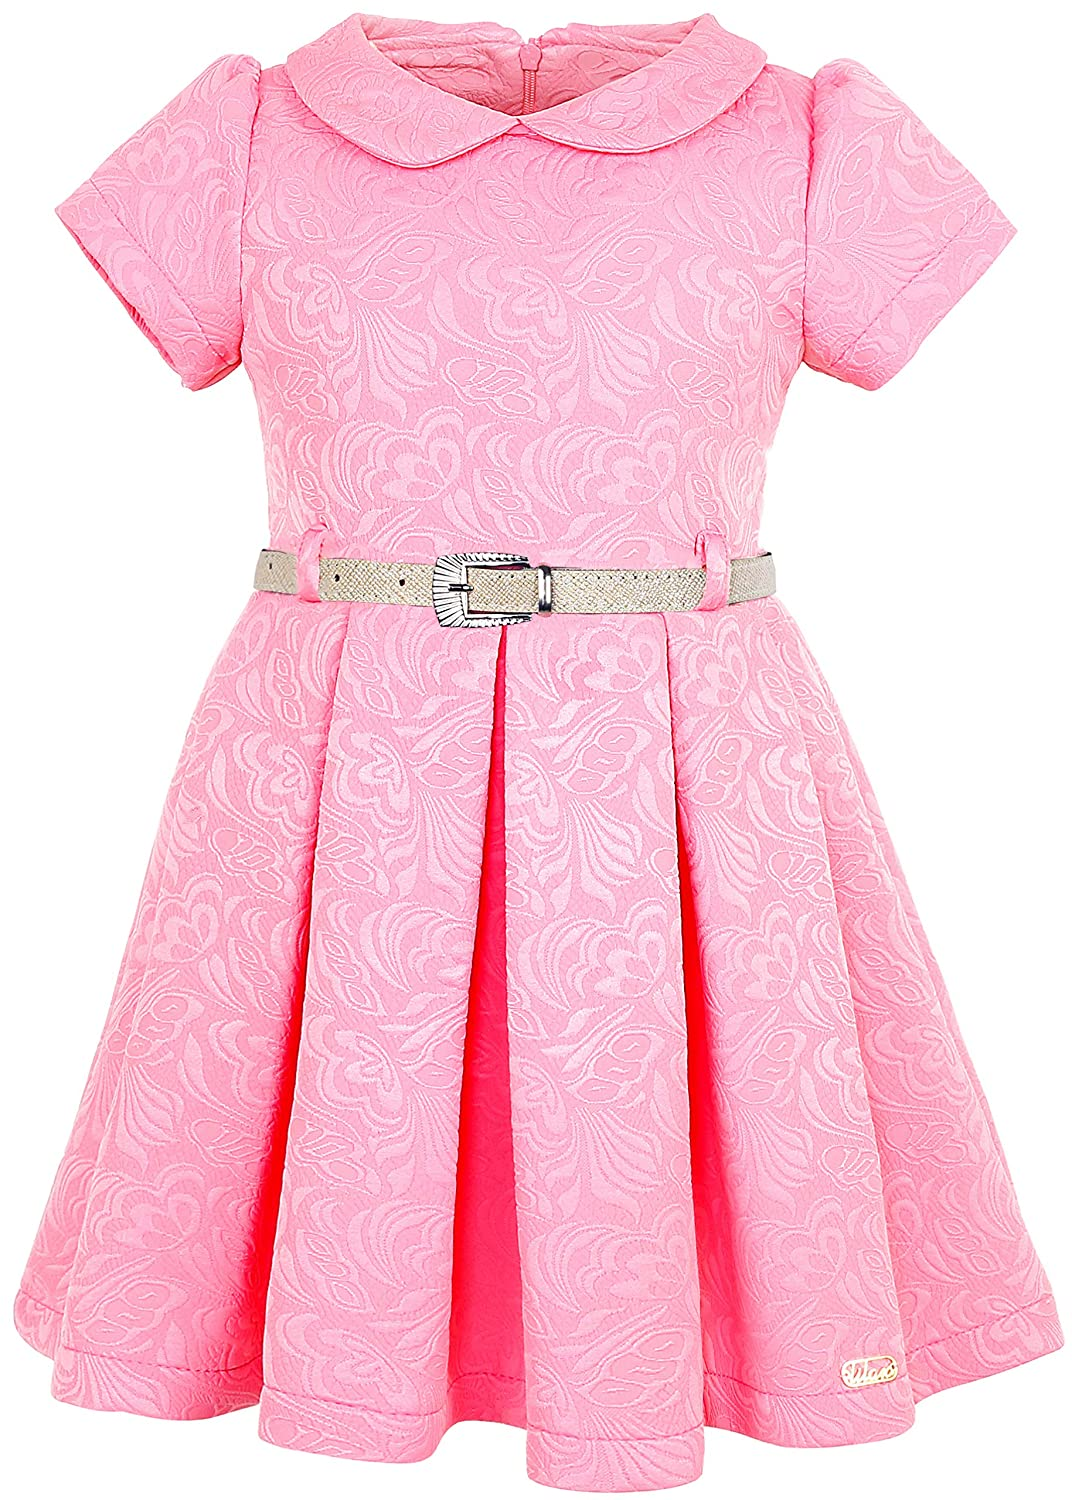 7599ac5bad99 Adorable party dress is made of flock fabric with short sleeves, peter pan  collar and pleated skirt. Elegant party dress made from highest-quality  materials ...